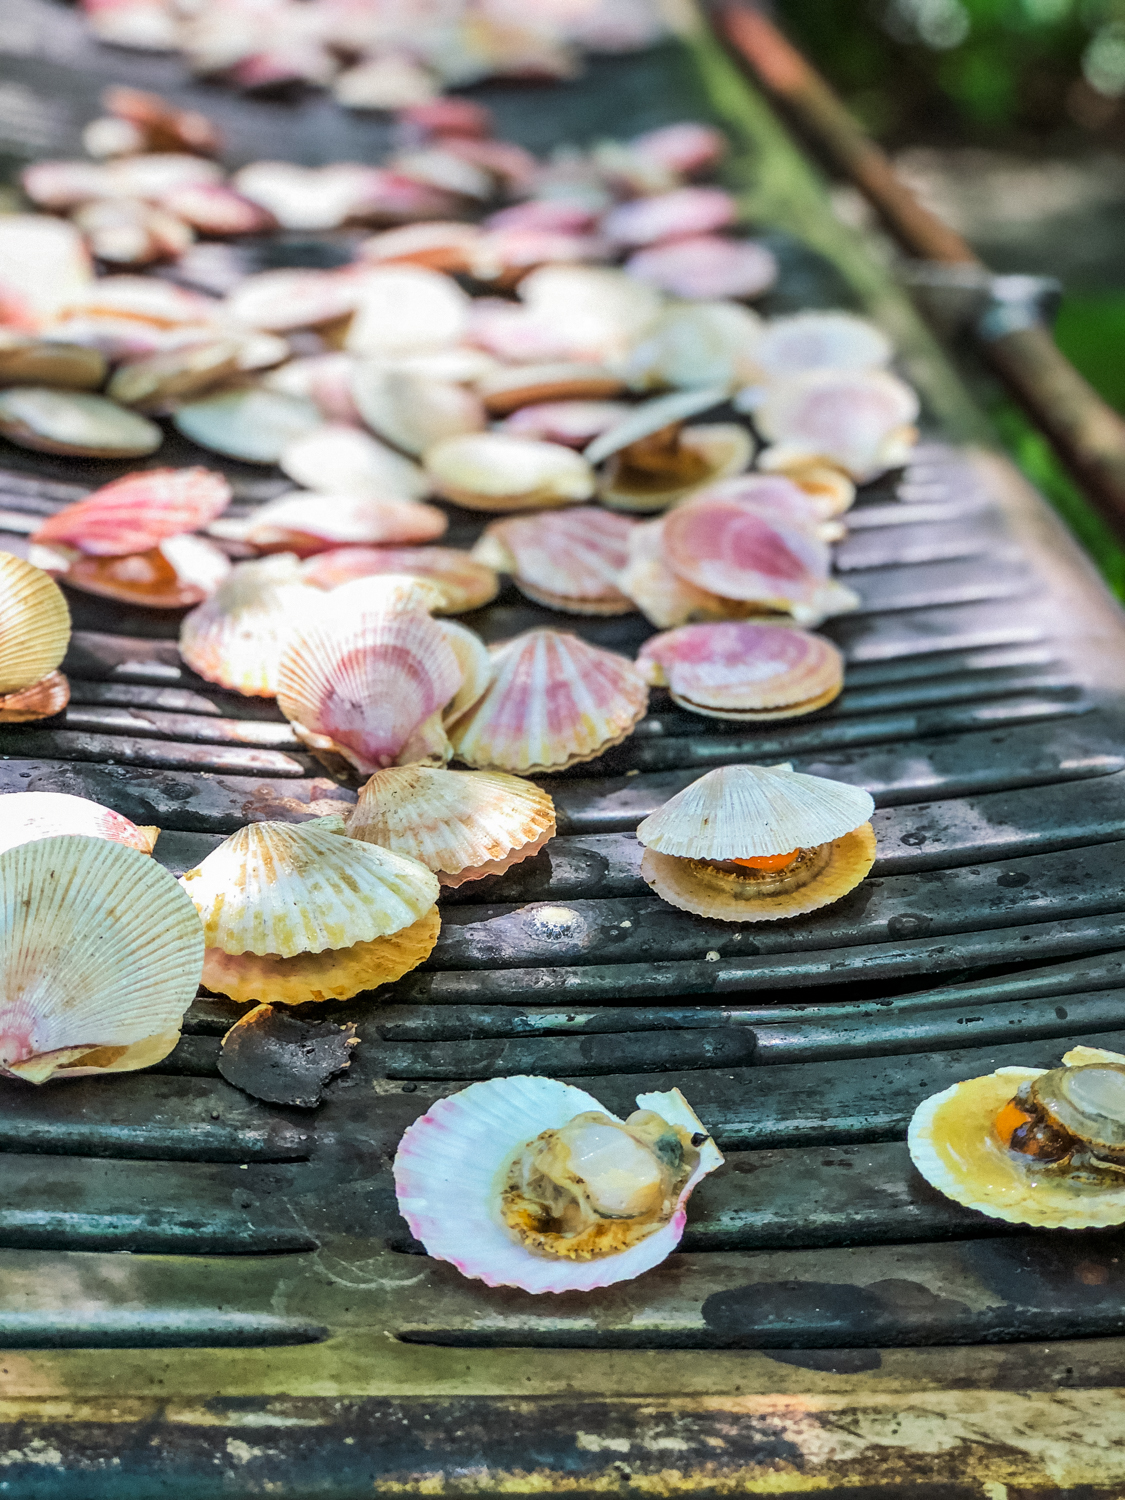 Barbecued Scallops